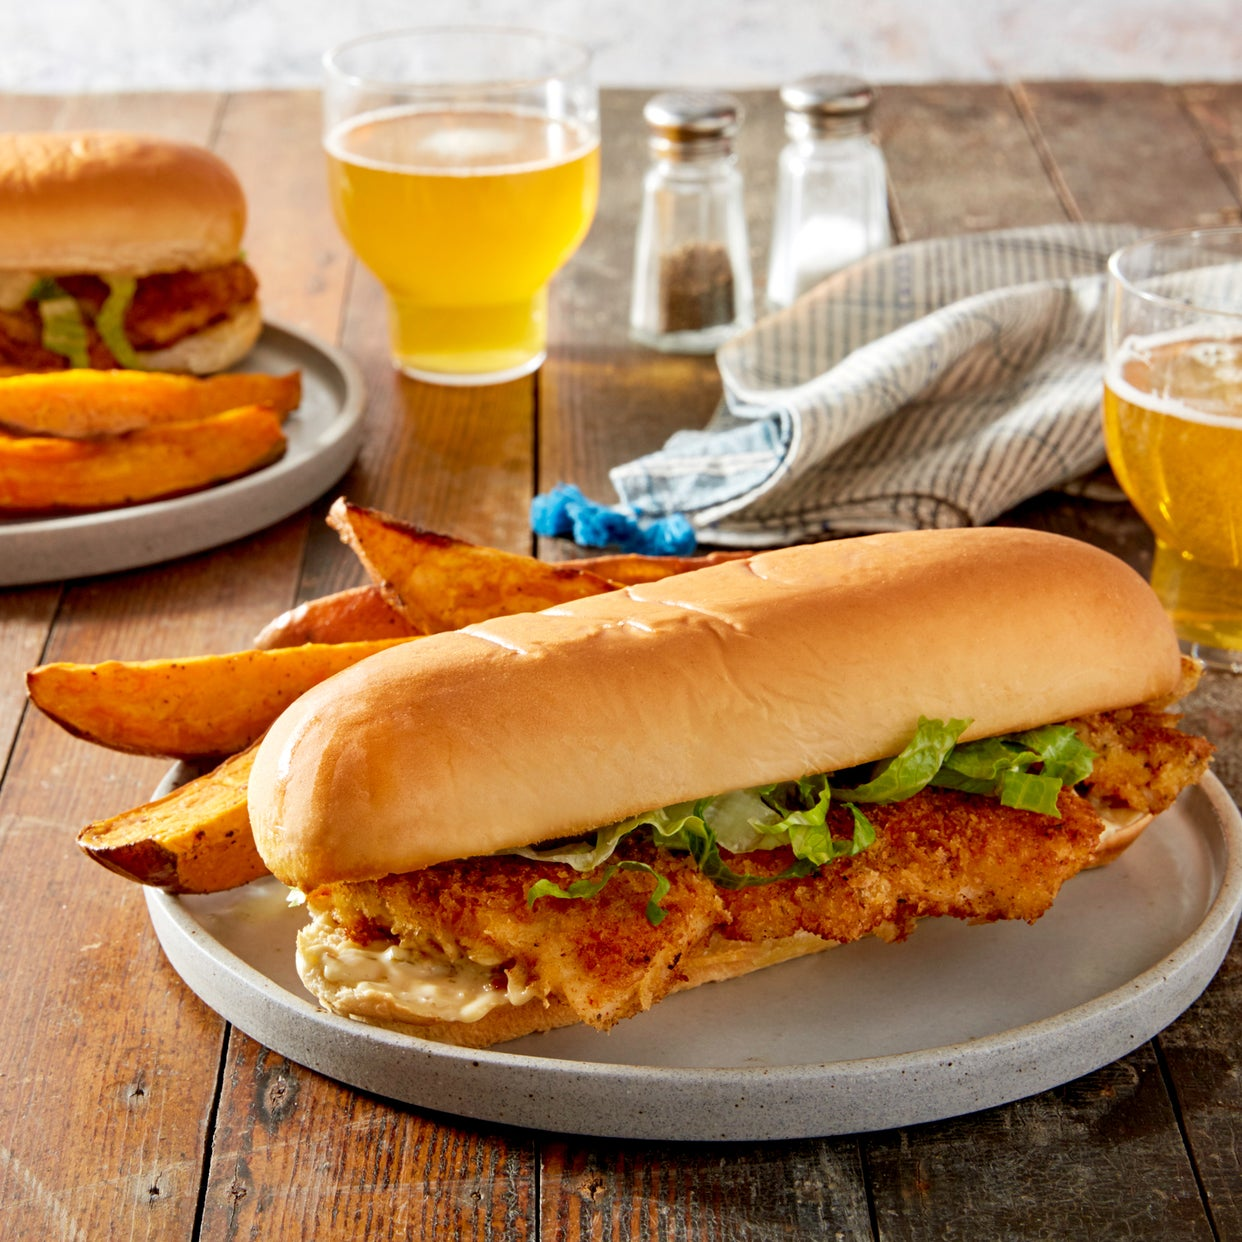 Crispy Fish Sandwiches with Tartar Sauce & Roasted Sweet Potato Wedges